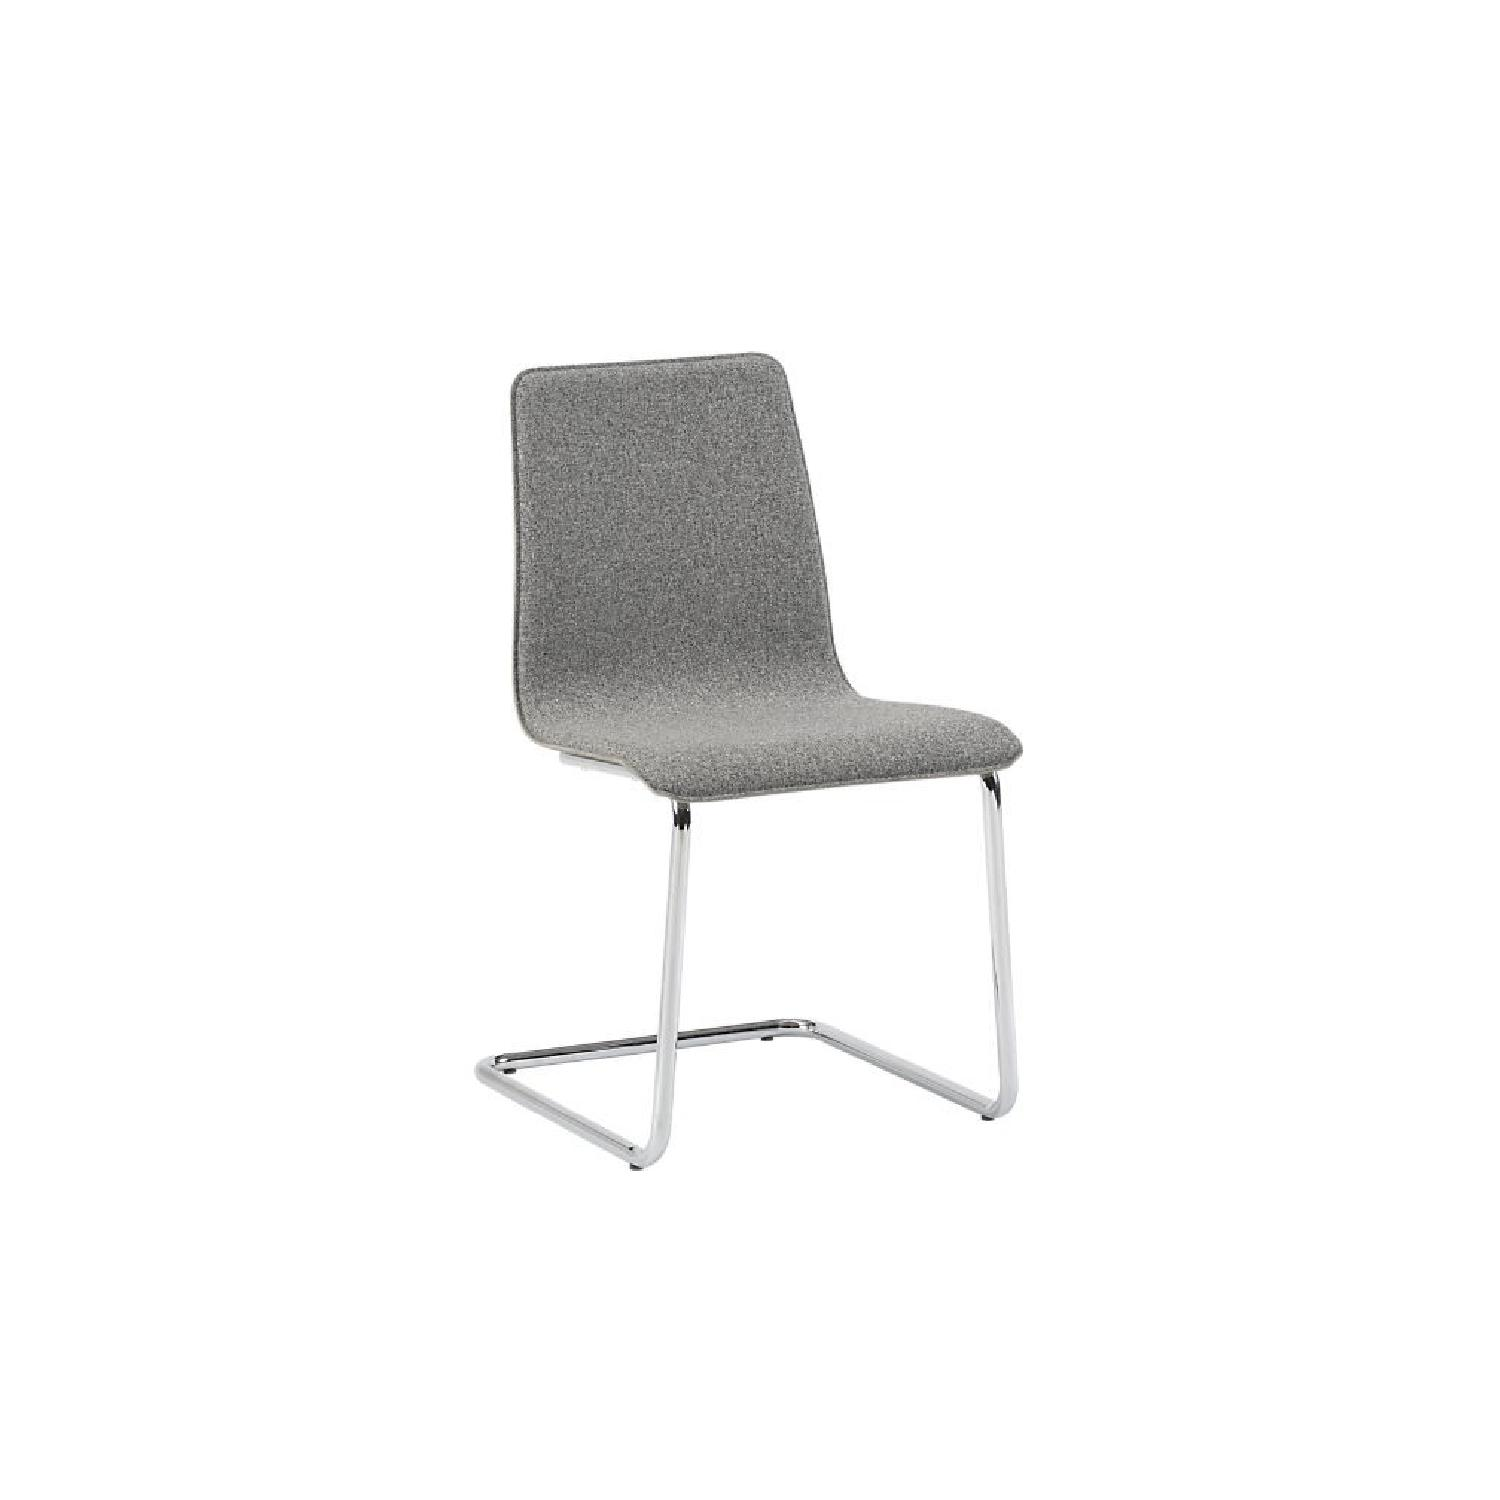 CB2 Tweed Dining Chair